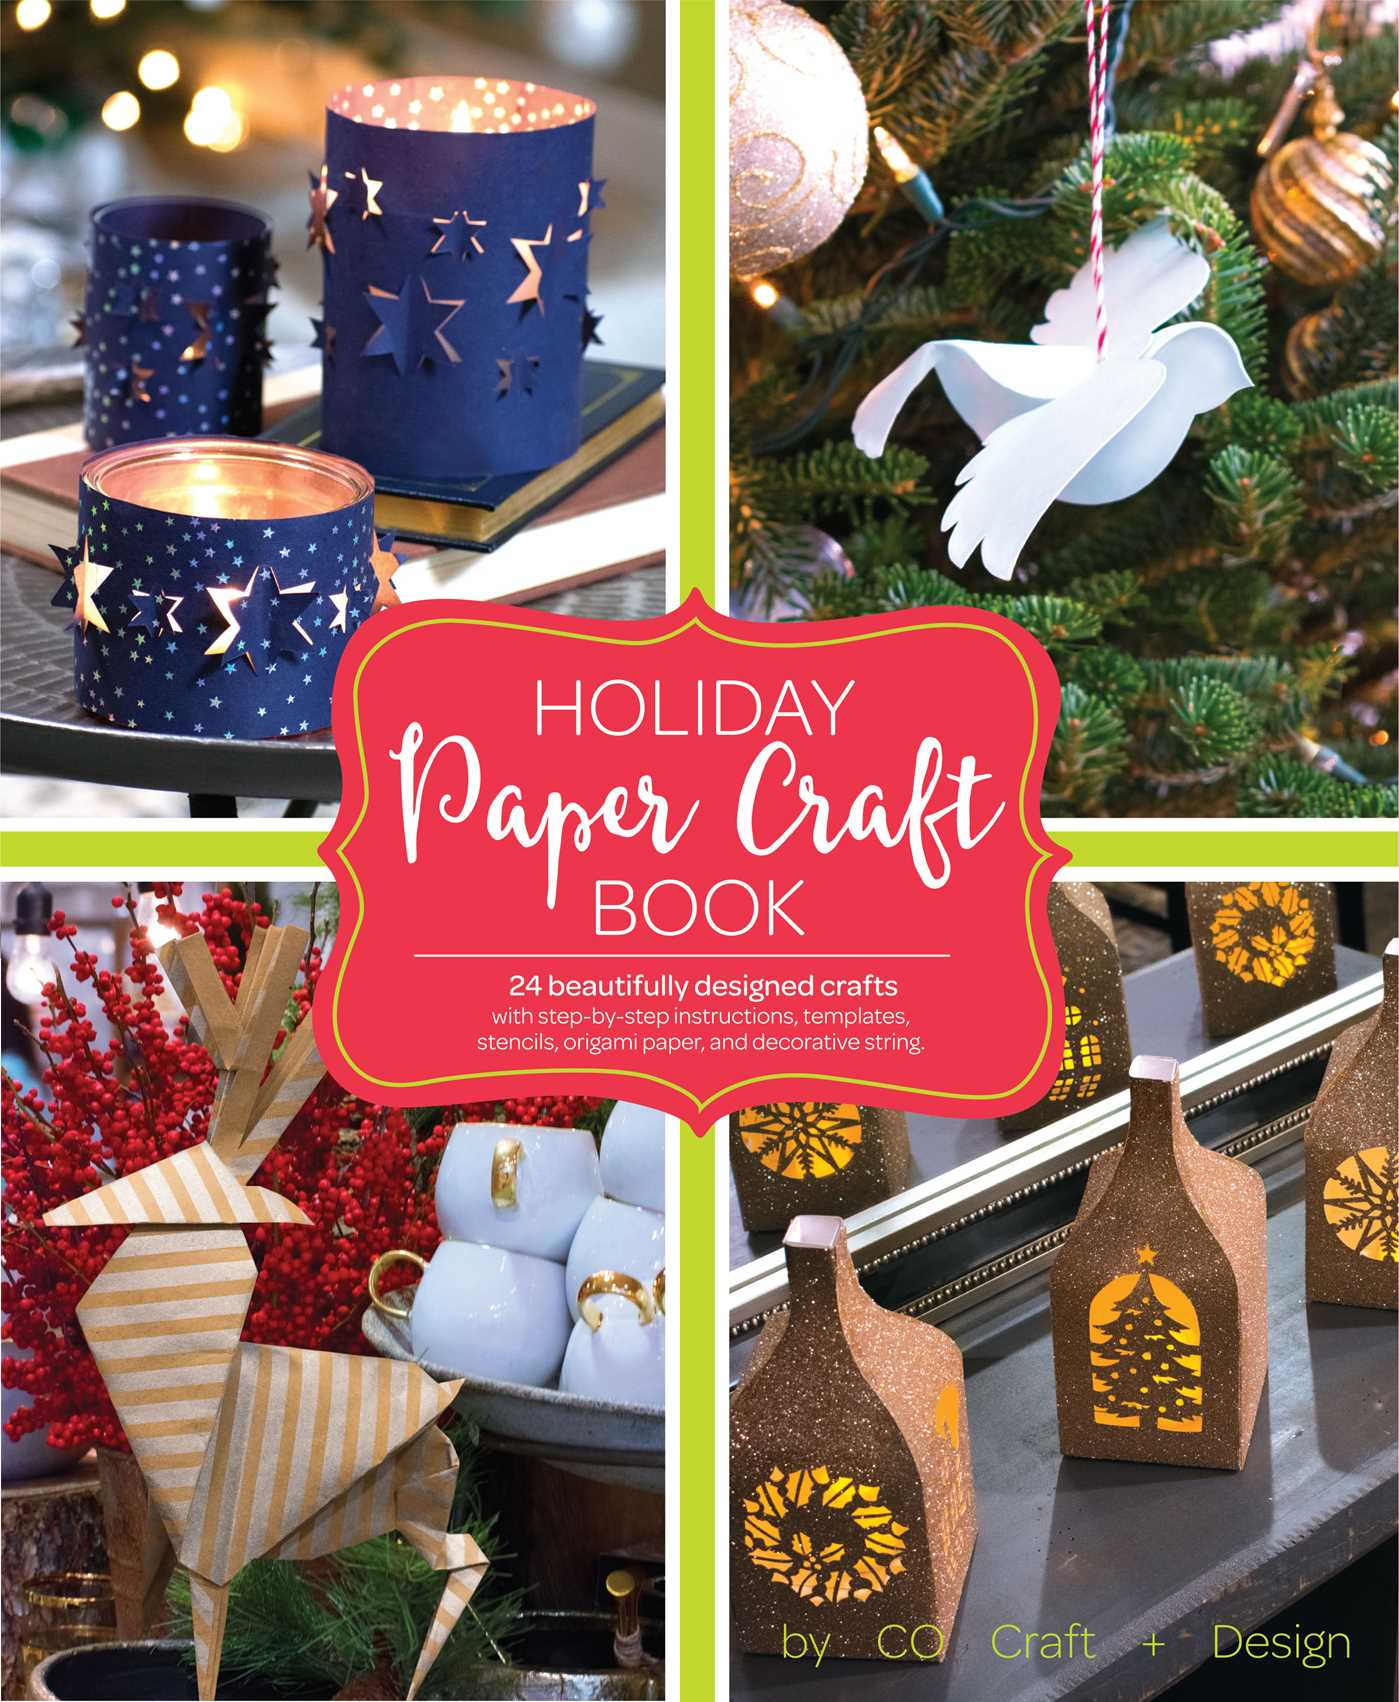 Paper Bag Book Cover Decoration ~ Holiday paper crafts book by larimer craft design